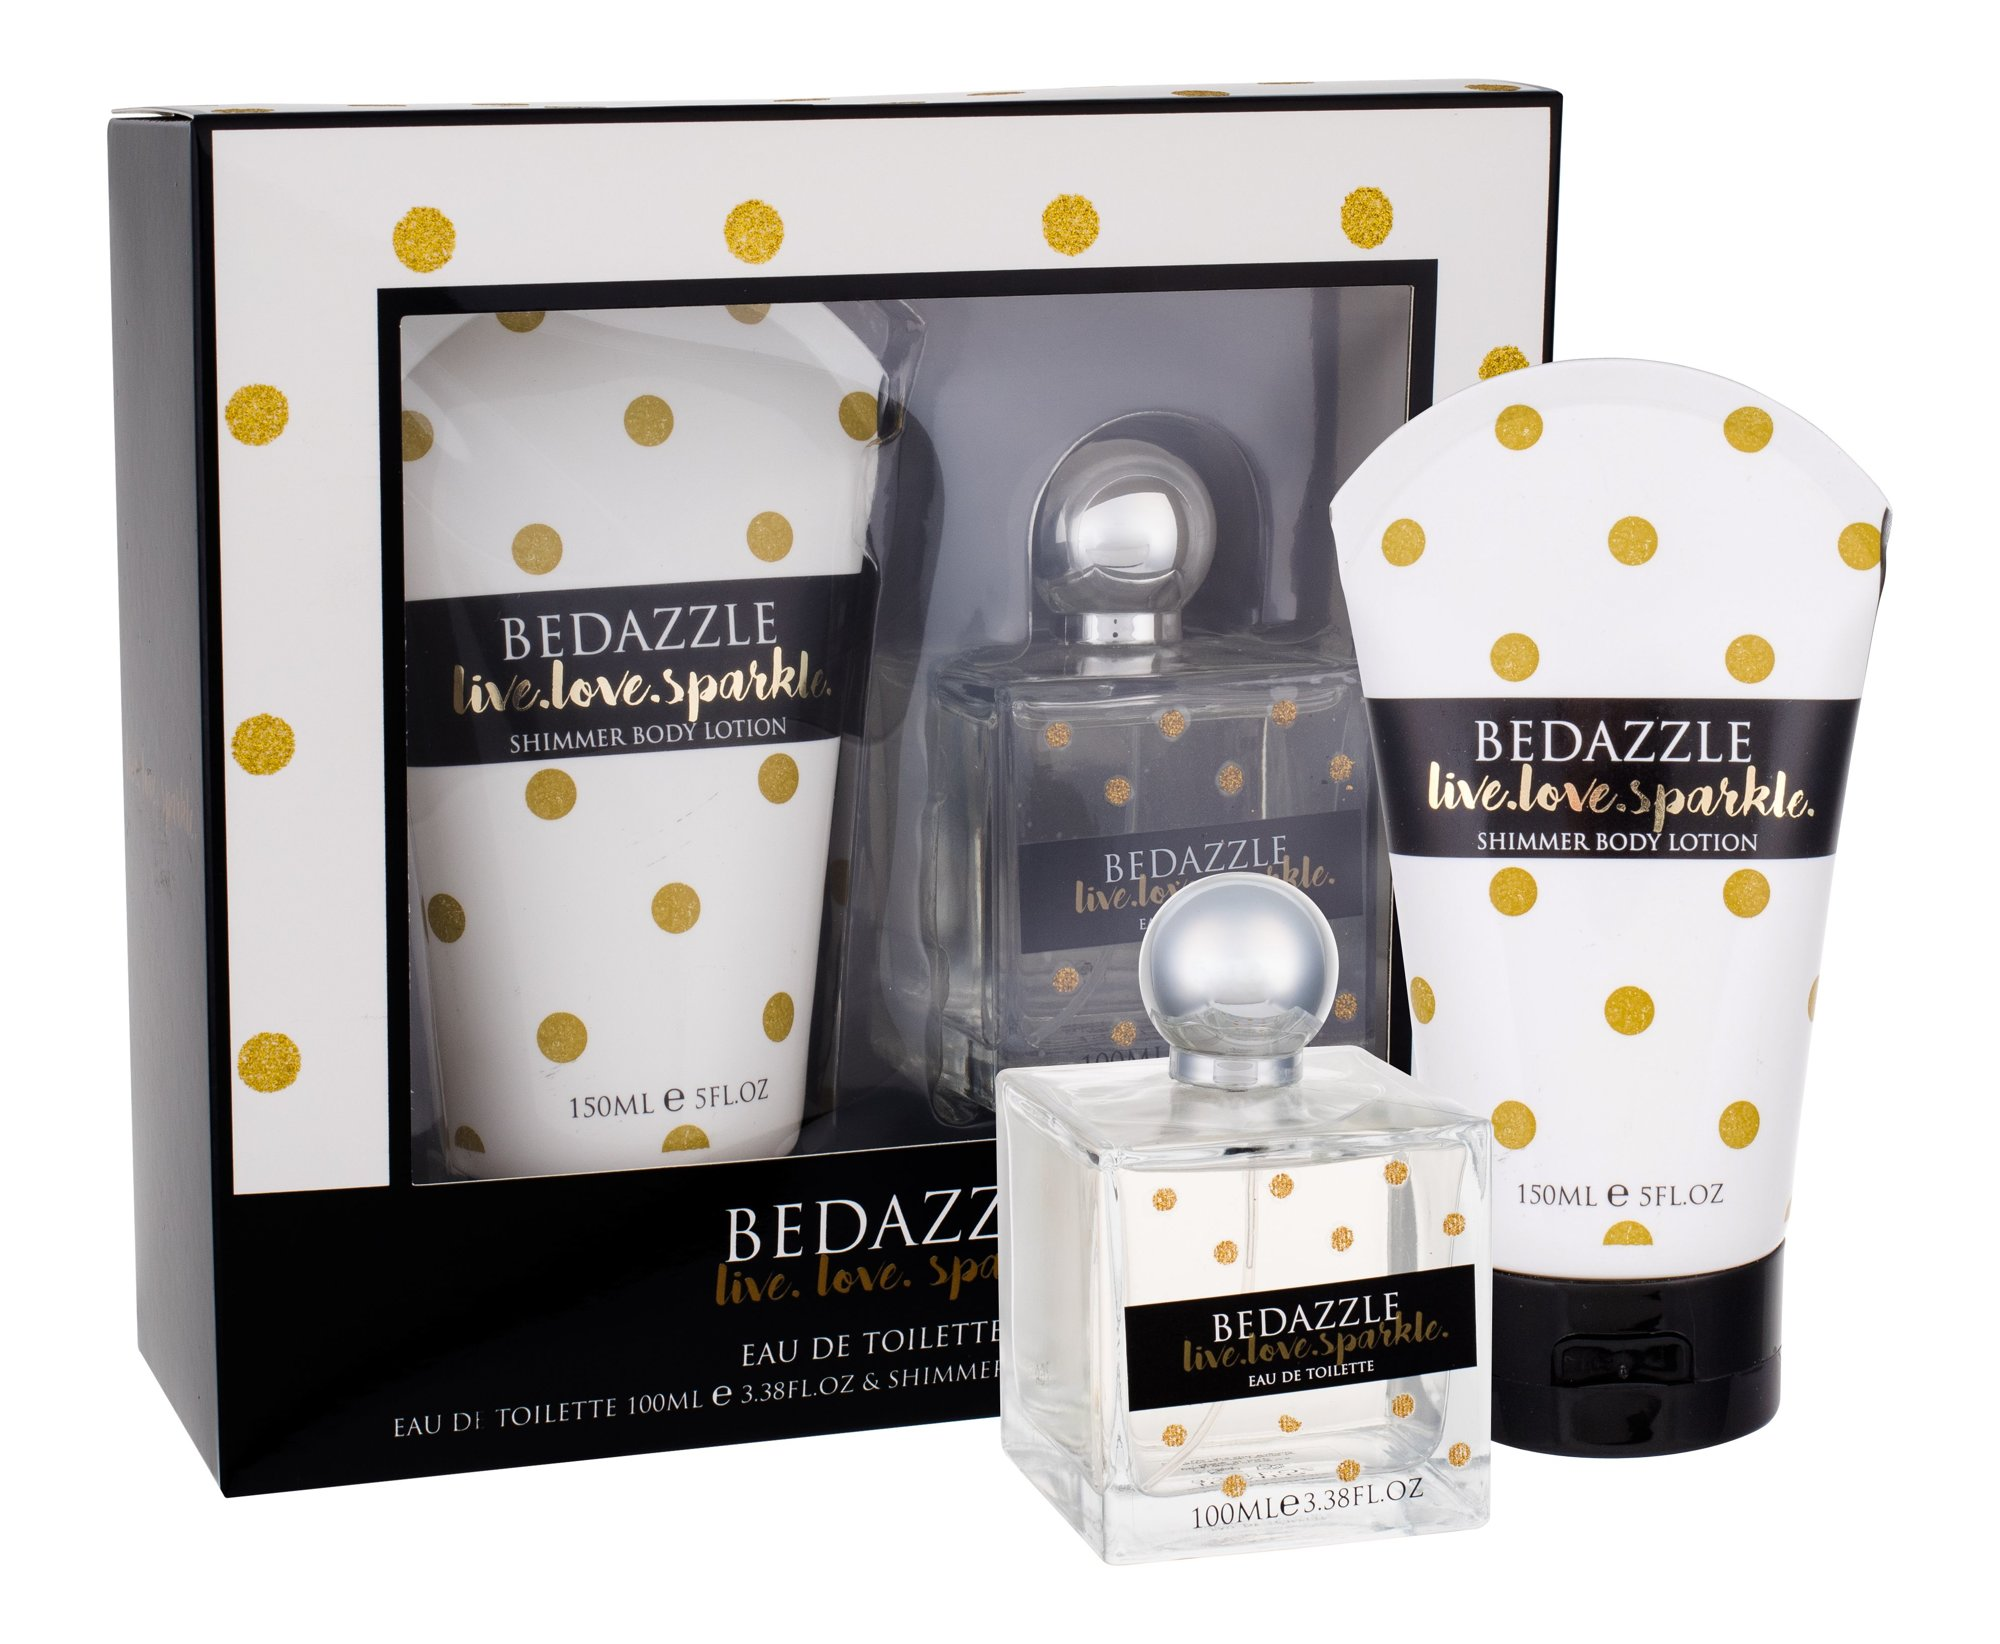 Bedazzle Live.love.sparkle EDT 100ml